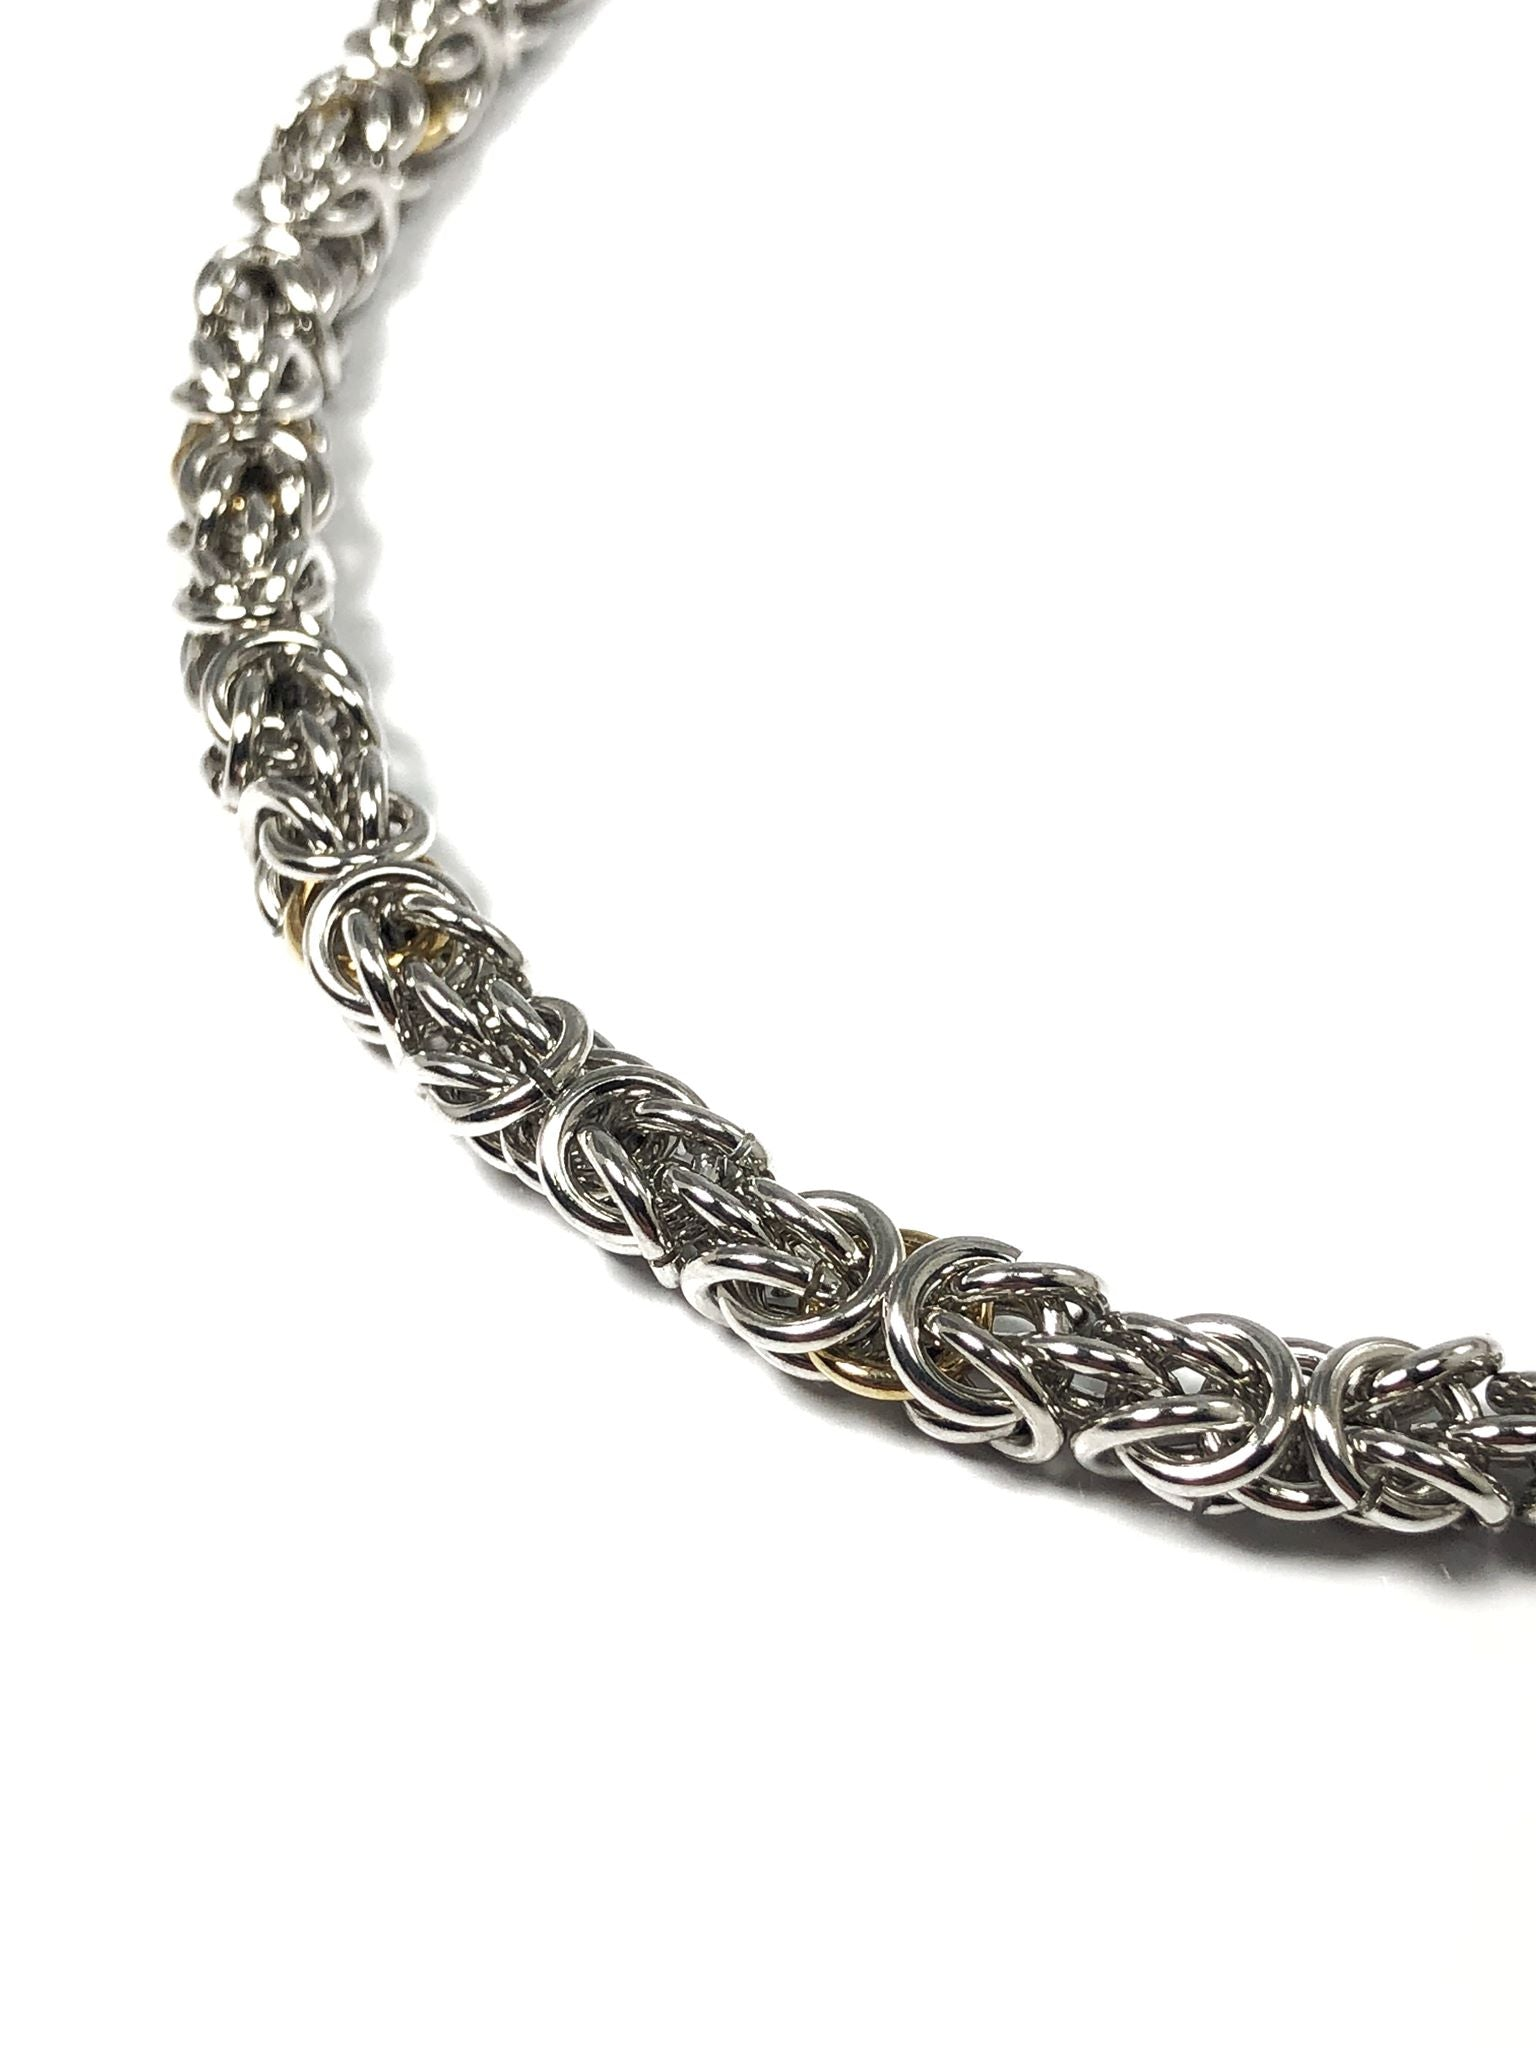 Silver Handwoven Byzantine Chain - Terry Schiefer